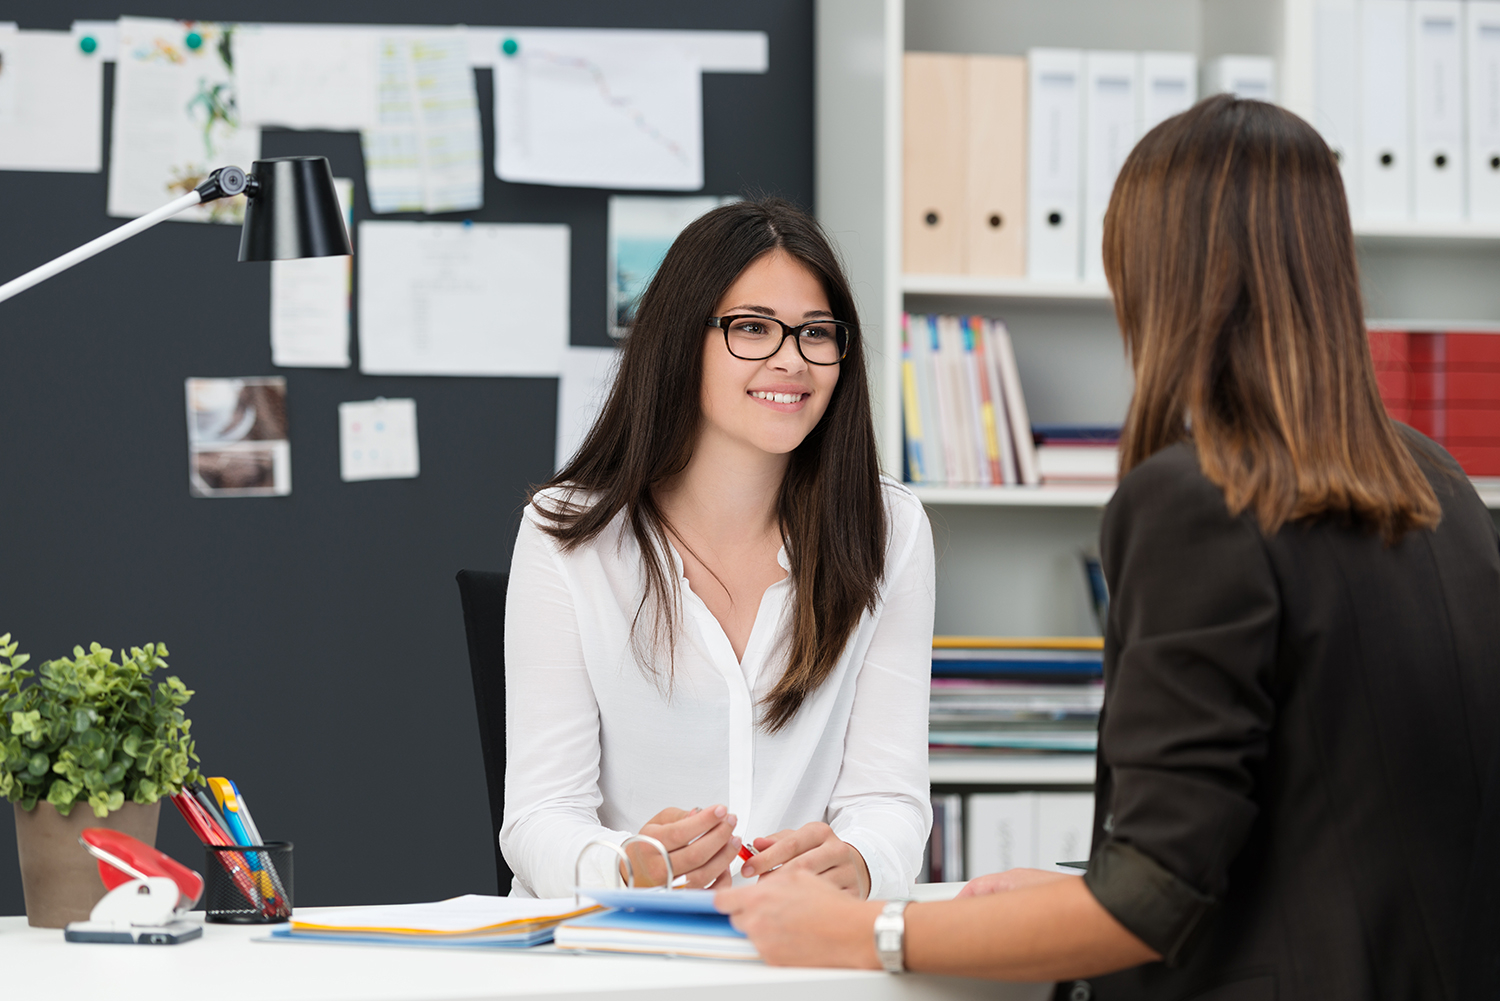 two females in an office setting